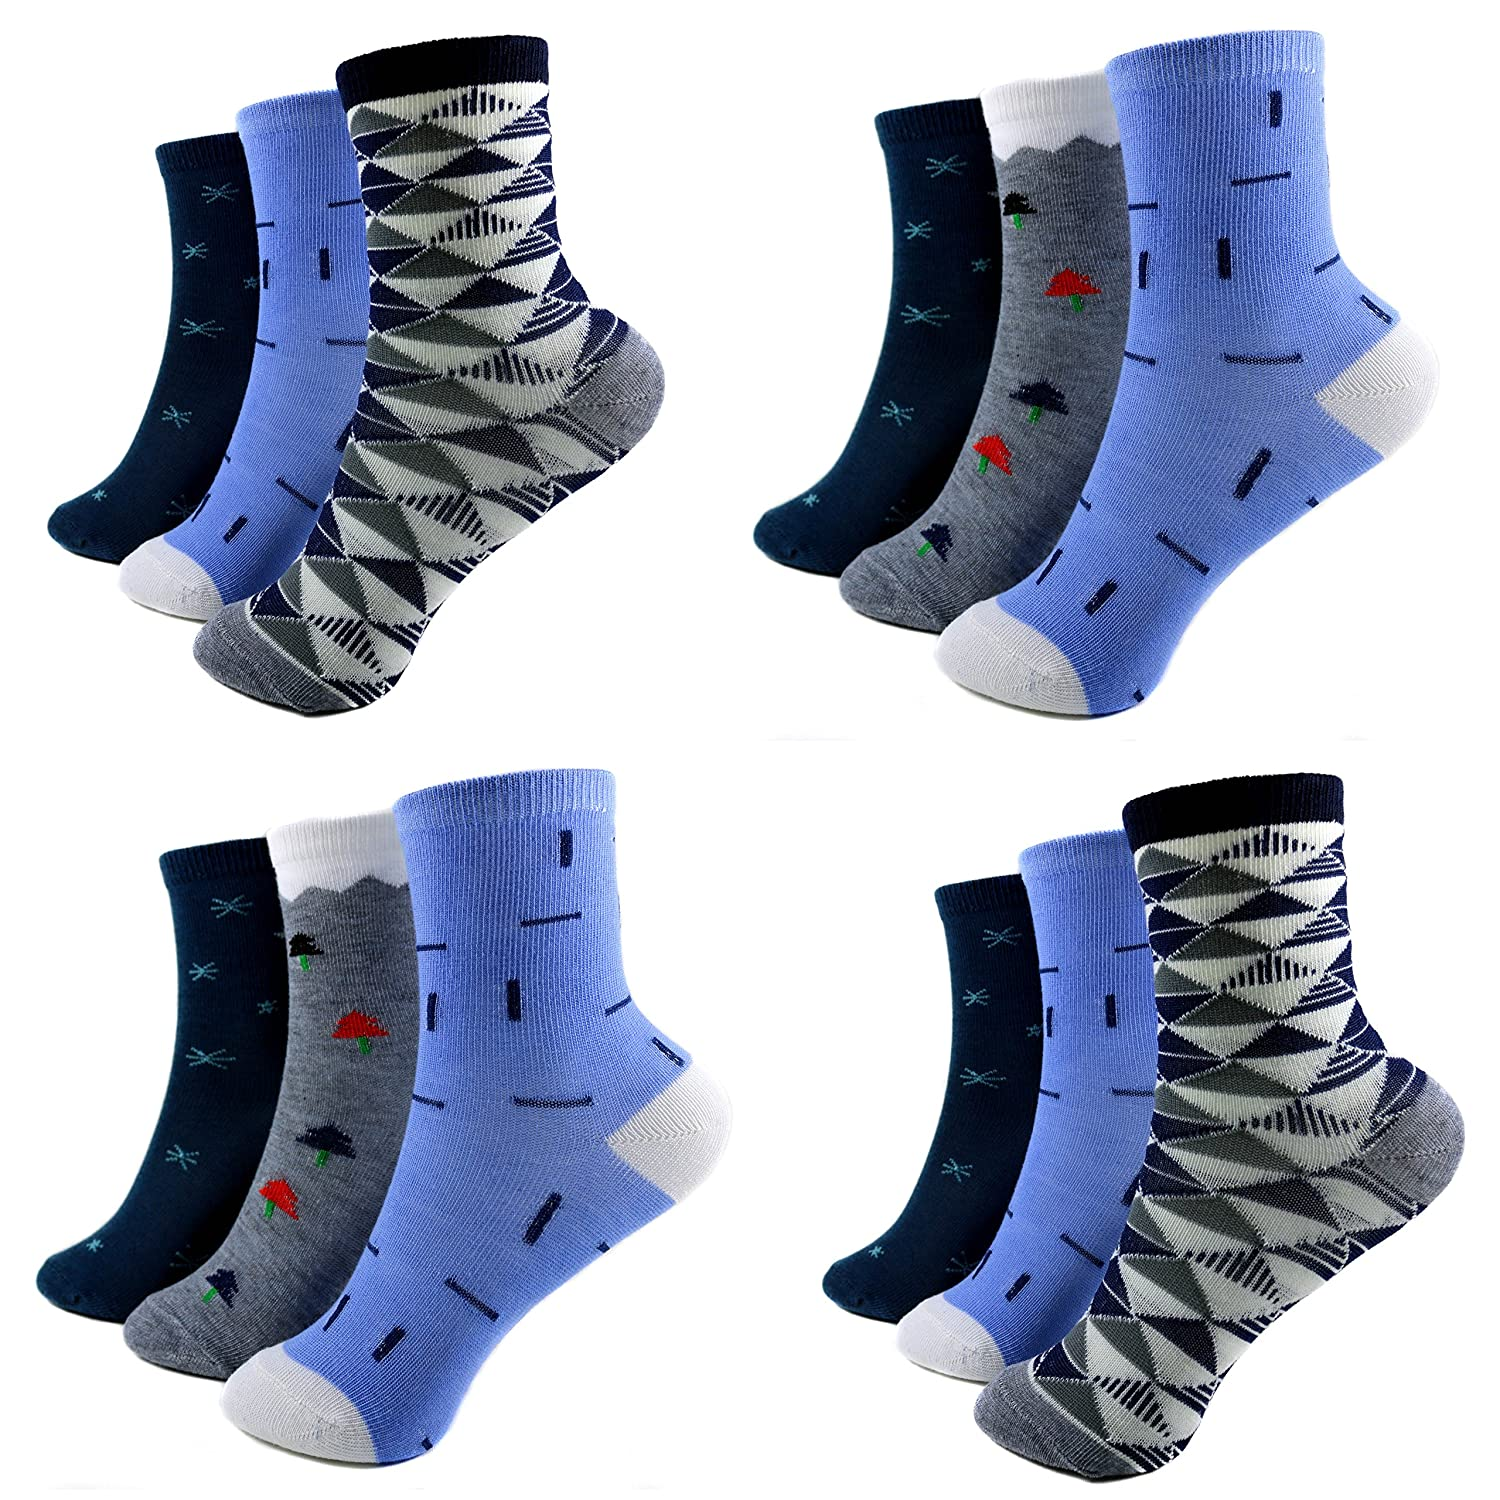 12 pairs Kids Boys Socks Children Stockings 85% Cotton Colorful size. 6-5 A. s-100 (Age 2 to 15)